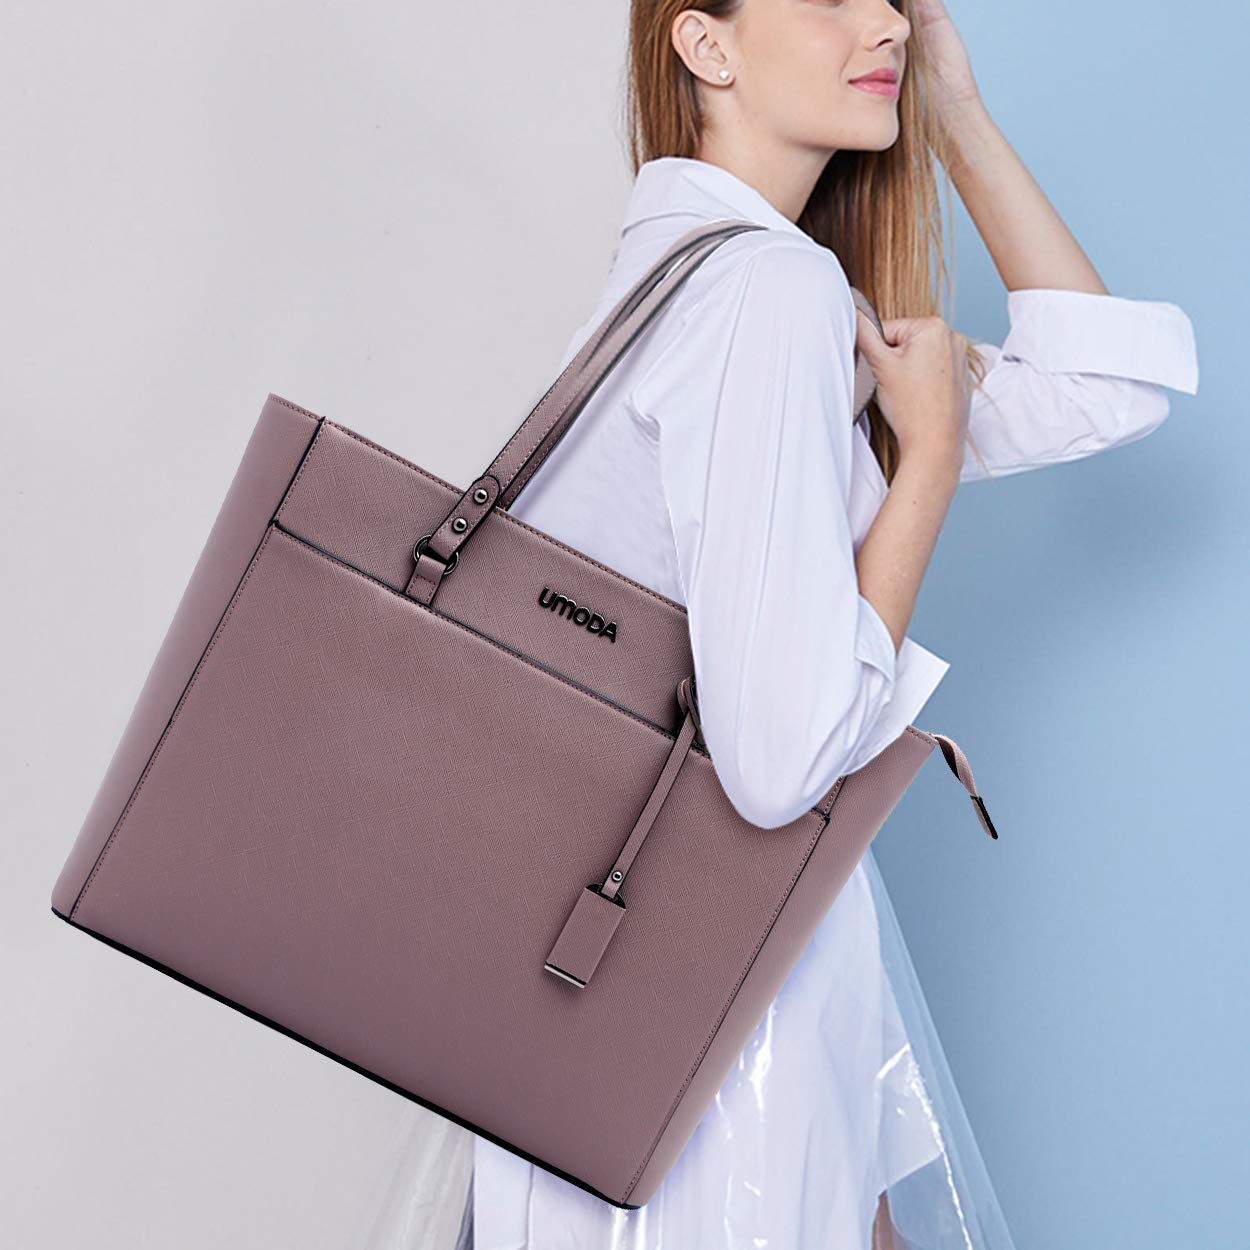 Laptop Bag for Woman,13-15.6 Inch Laptop Tote Bag Briefcase with Padded Compartment, Best [Purple] by UMODA (Image #2)